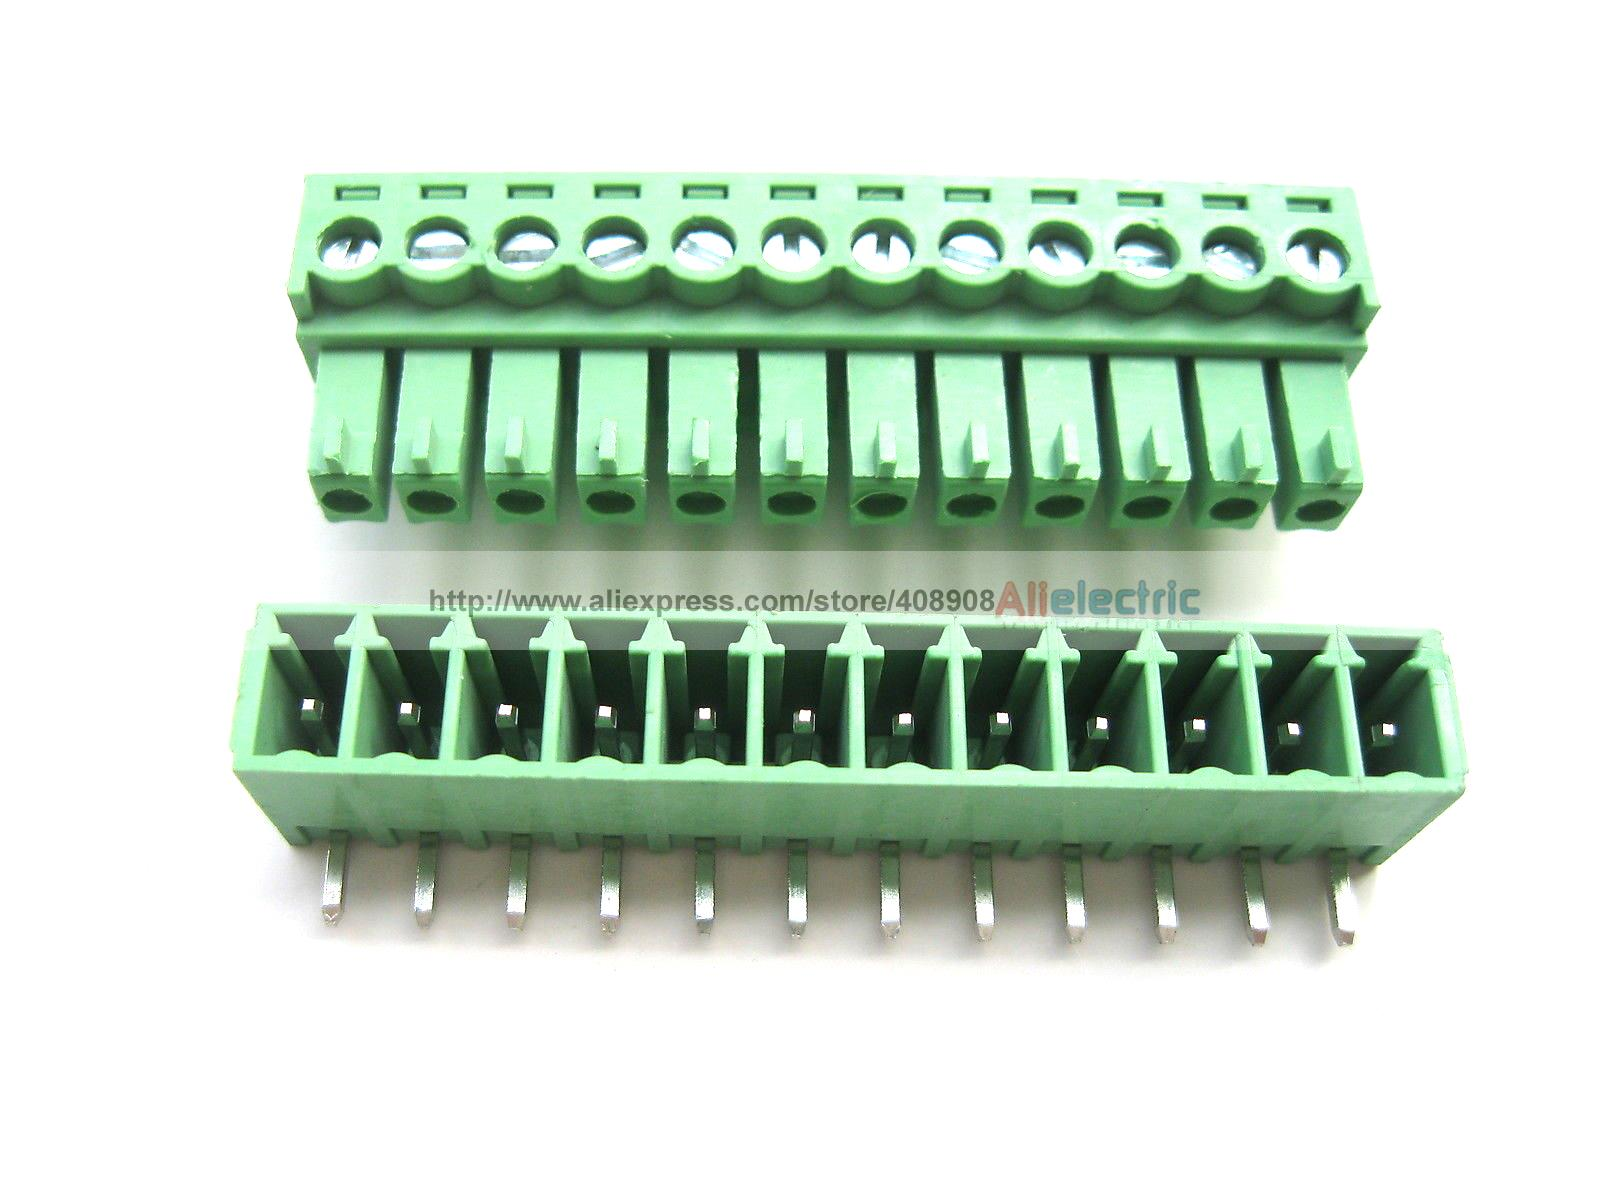 30 Pcs Screw Terminal Block Connector 3.5mm Angle 12 Pin Green Pluggable Type 2016 men s casual crocodile genuine leather boat shoes slip on velvet loafers moccasin fashion flat shoes men s loafer shoes new